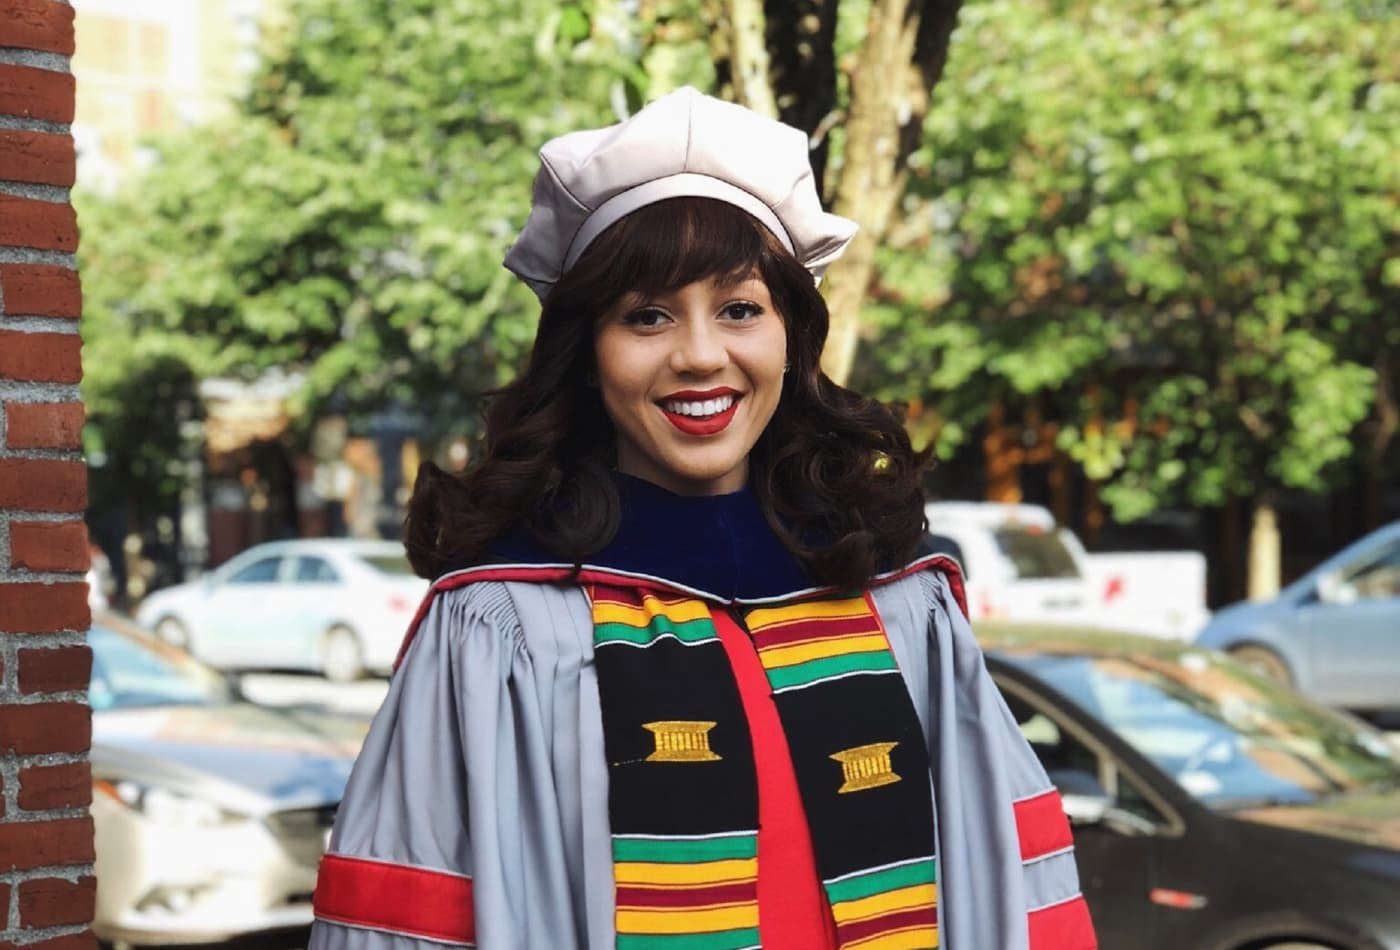 30-year-old Mareena Robinson Snowden is the first black woman to earn a PhD in nuclear engineering from MIT